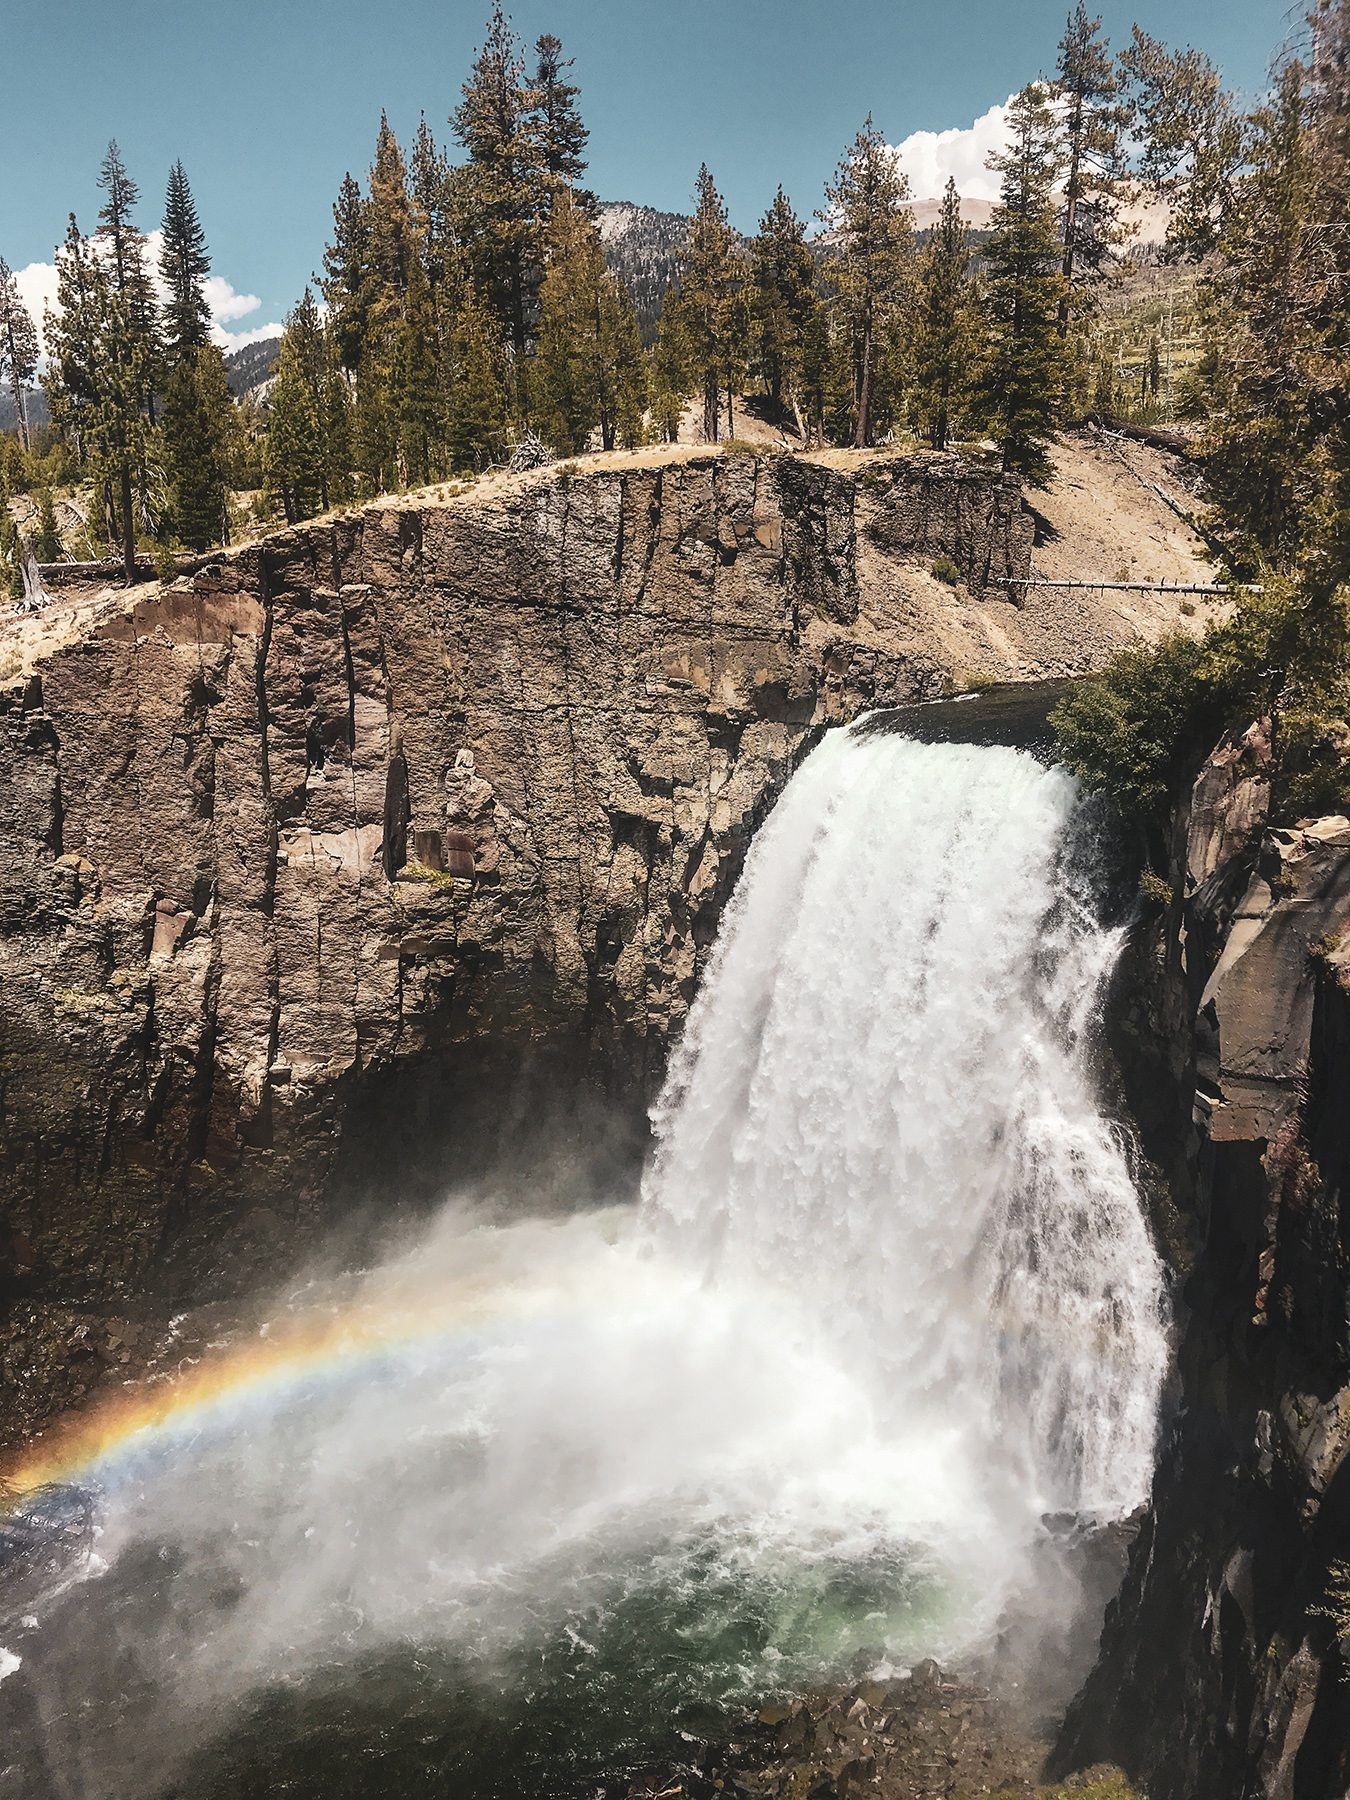 Rainbow Falls in Devils Postpile National Monument near Mammoth lakes